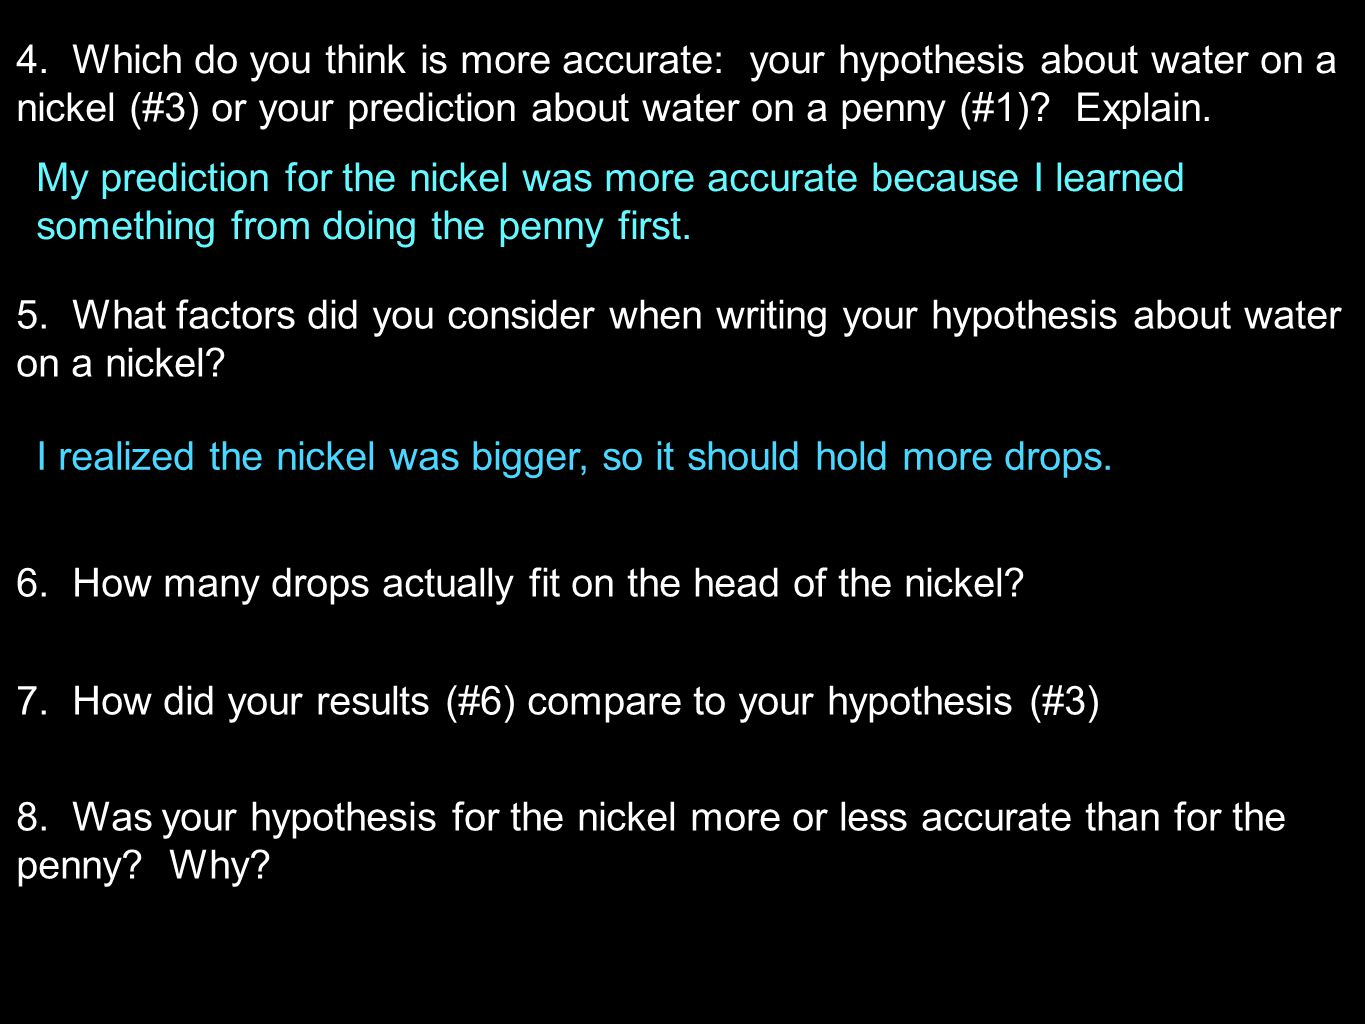 4. Which do you think is more accurate: your hypothesis about water on a nickel (#3) or your prediction about water on a penny (#1) Explain.